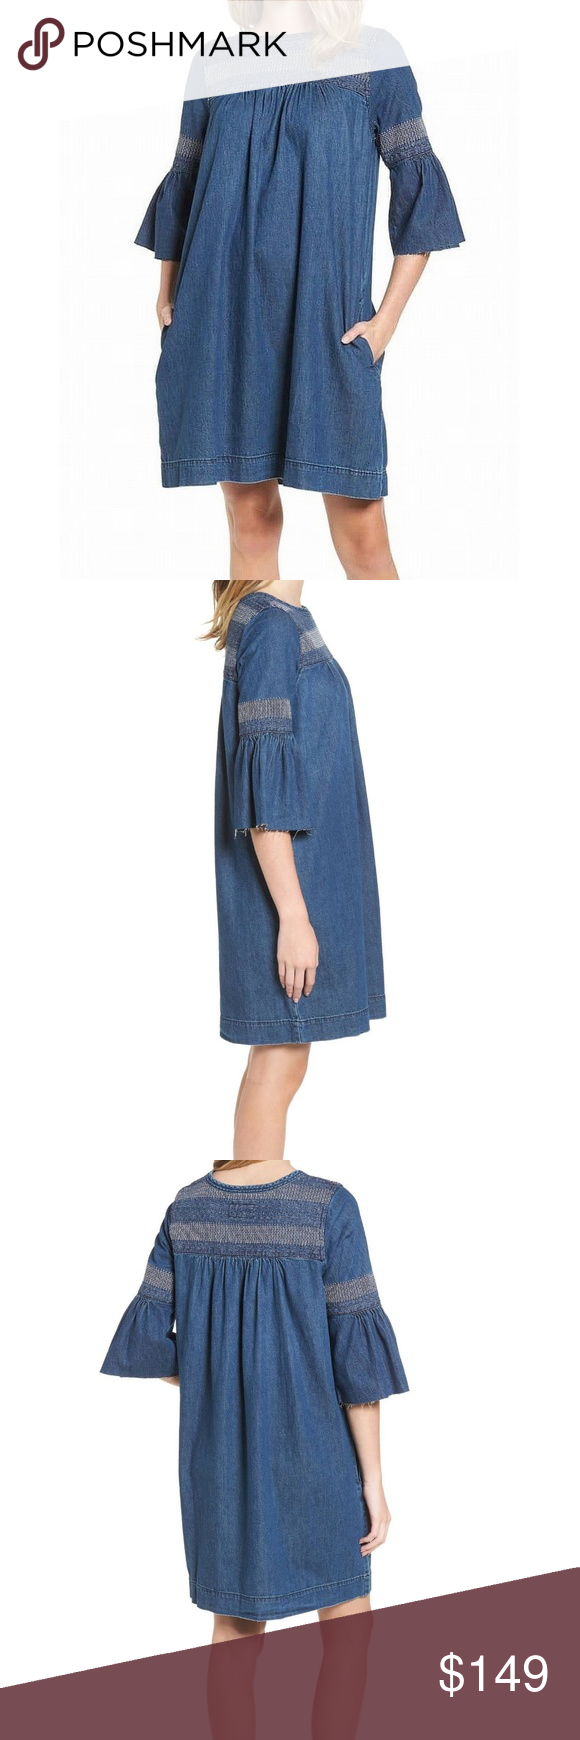 17a19011b4c Current Elliott Womens Denim Shift Dress NWT 2 Current Elliott Womens Denim  Shift Dress